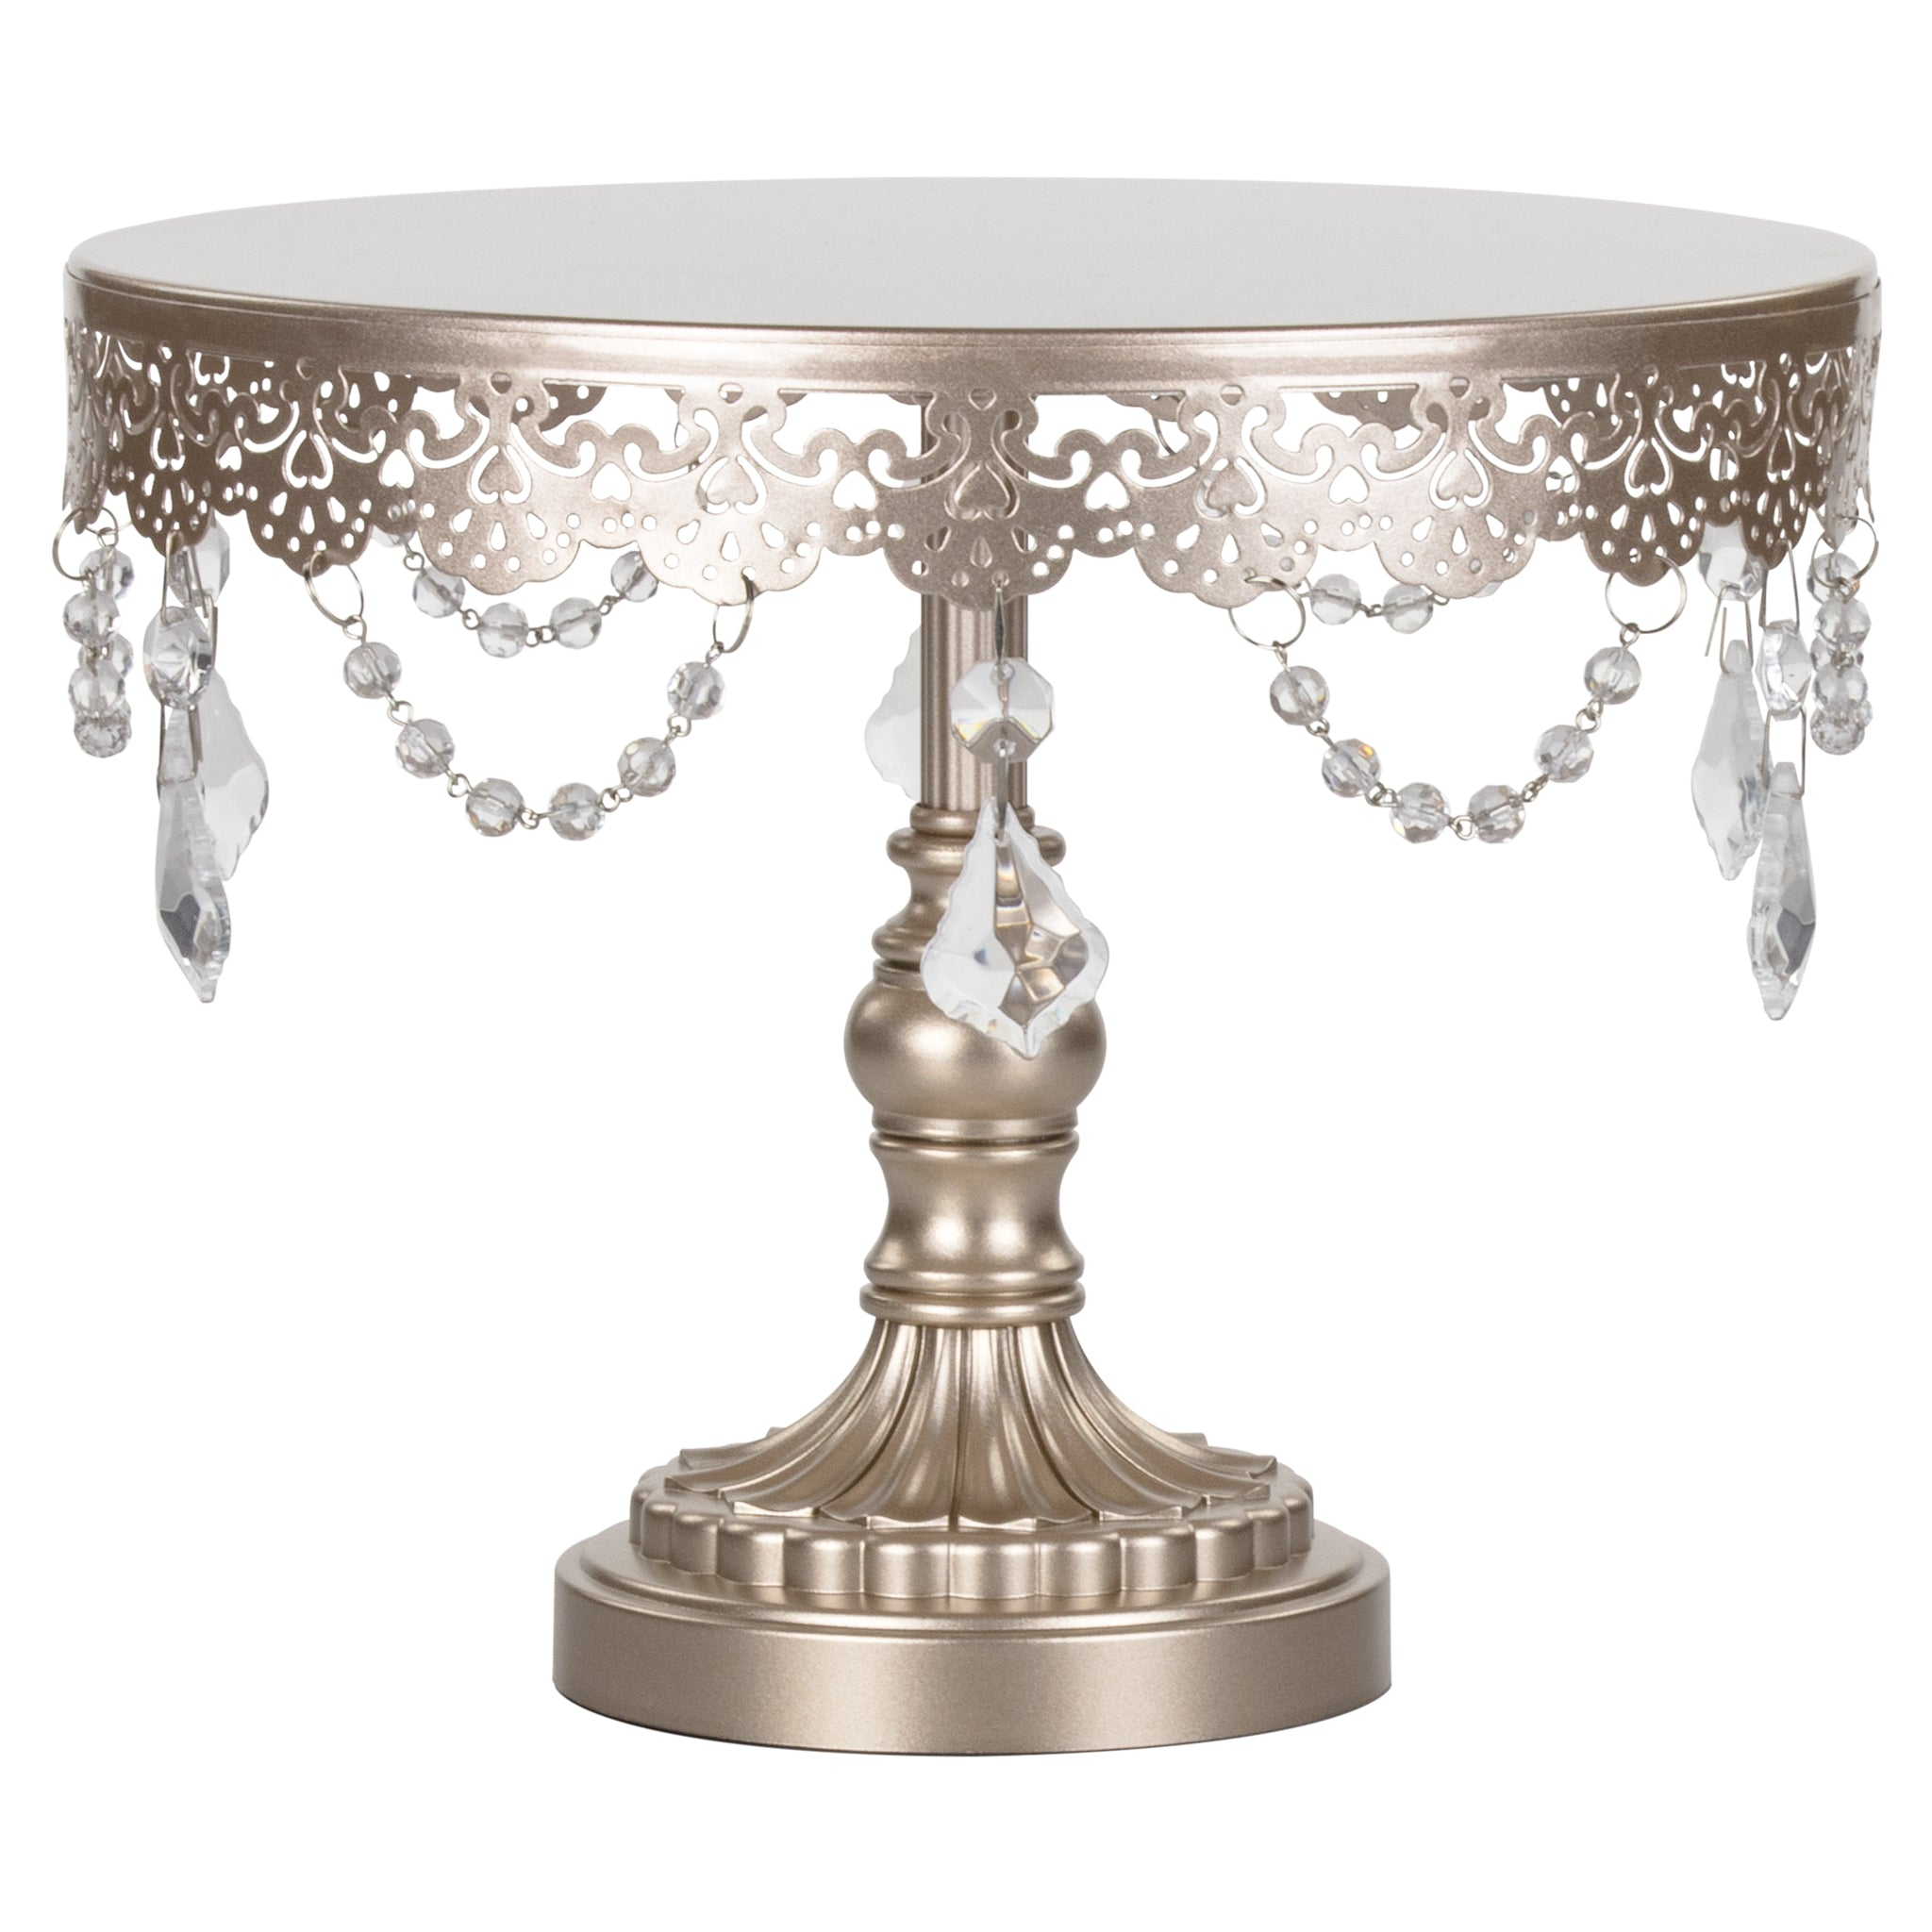 Amalfi Decor 10 Inch Crystal-Draped Round Metal Cake Stand (Champagne) | Stainless Steel Frame